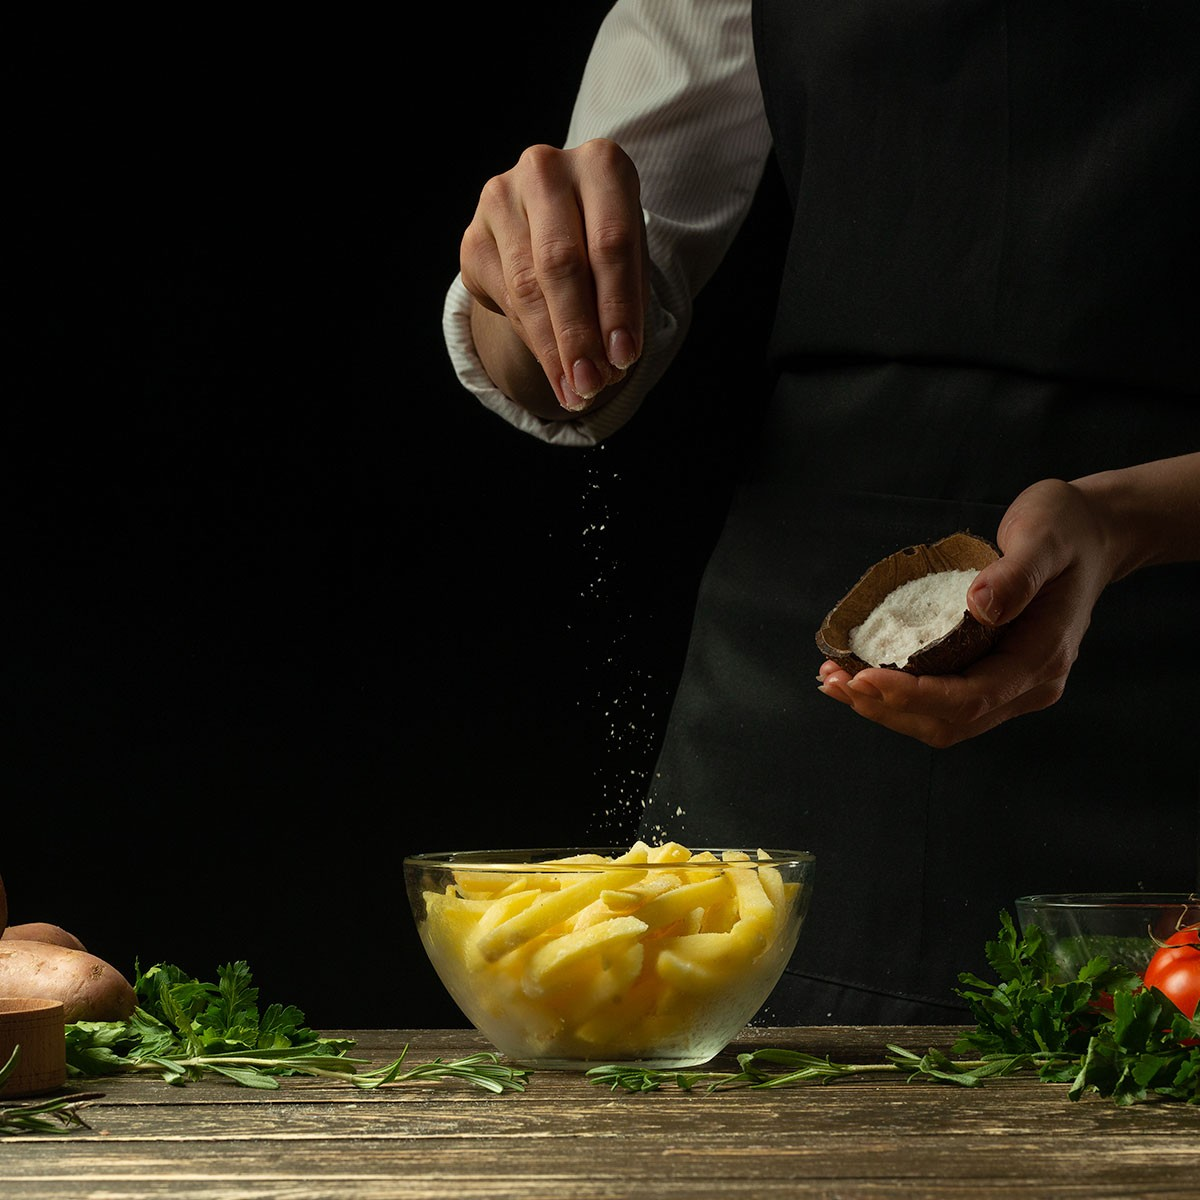 Serving Up Value By Controlling Food and Beverage Processes | Rockwell  Automation